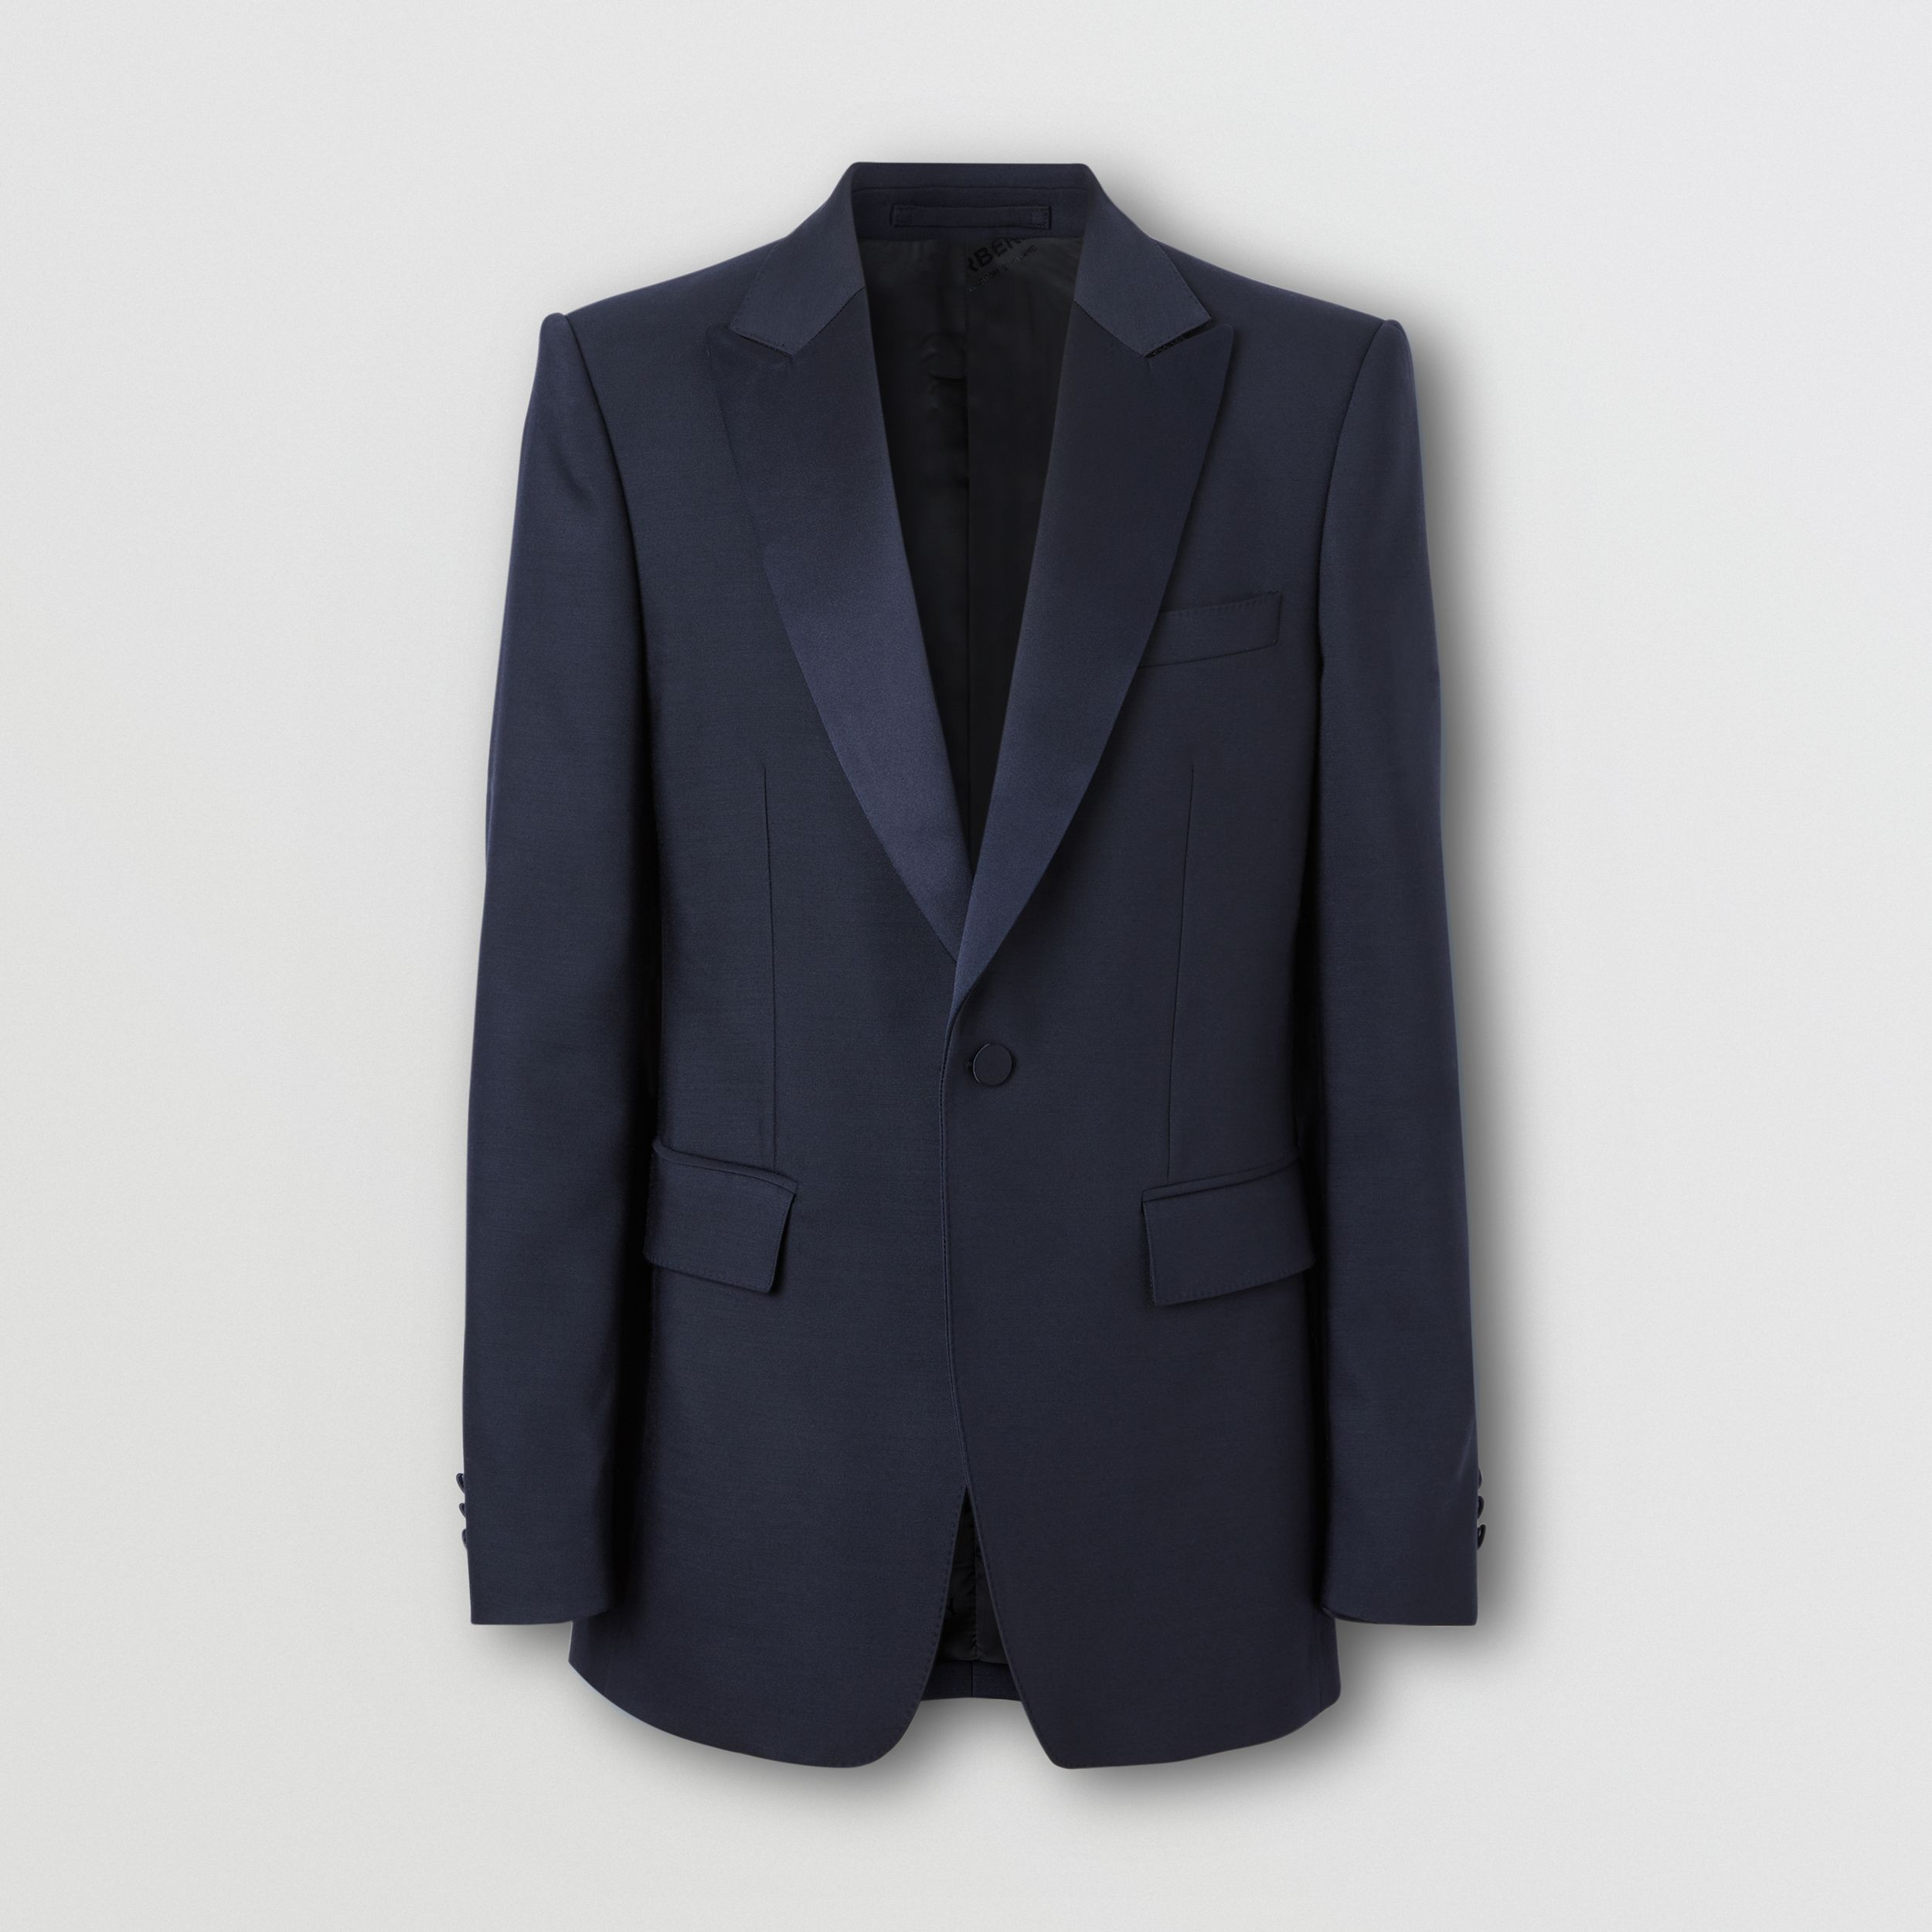 English Fit Wool Silk Blend Tailored Jacket in Navy Black - Men | Burberry - 4